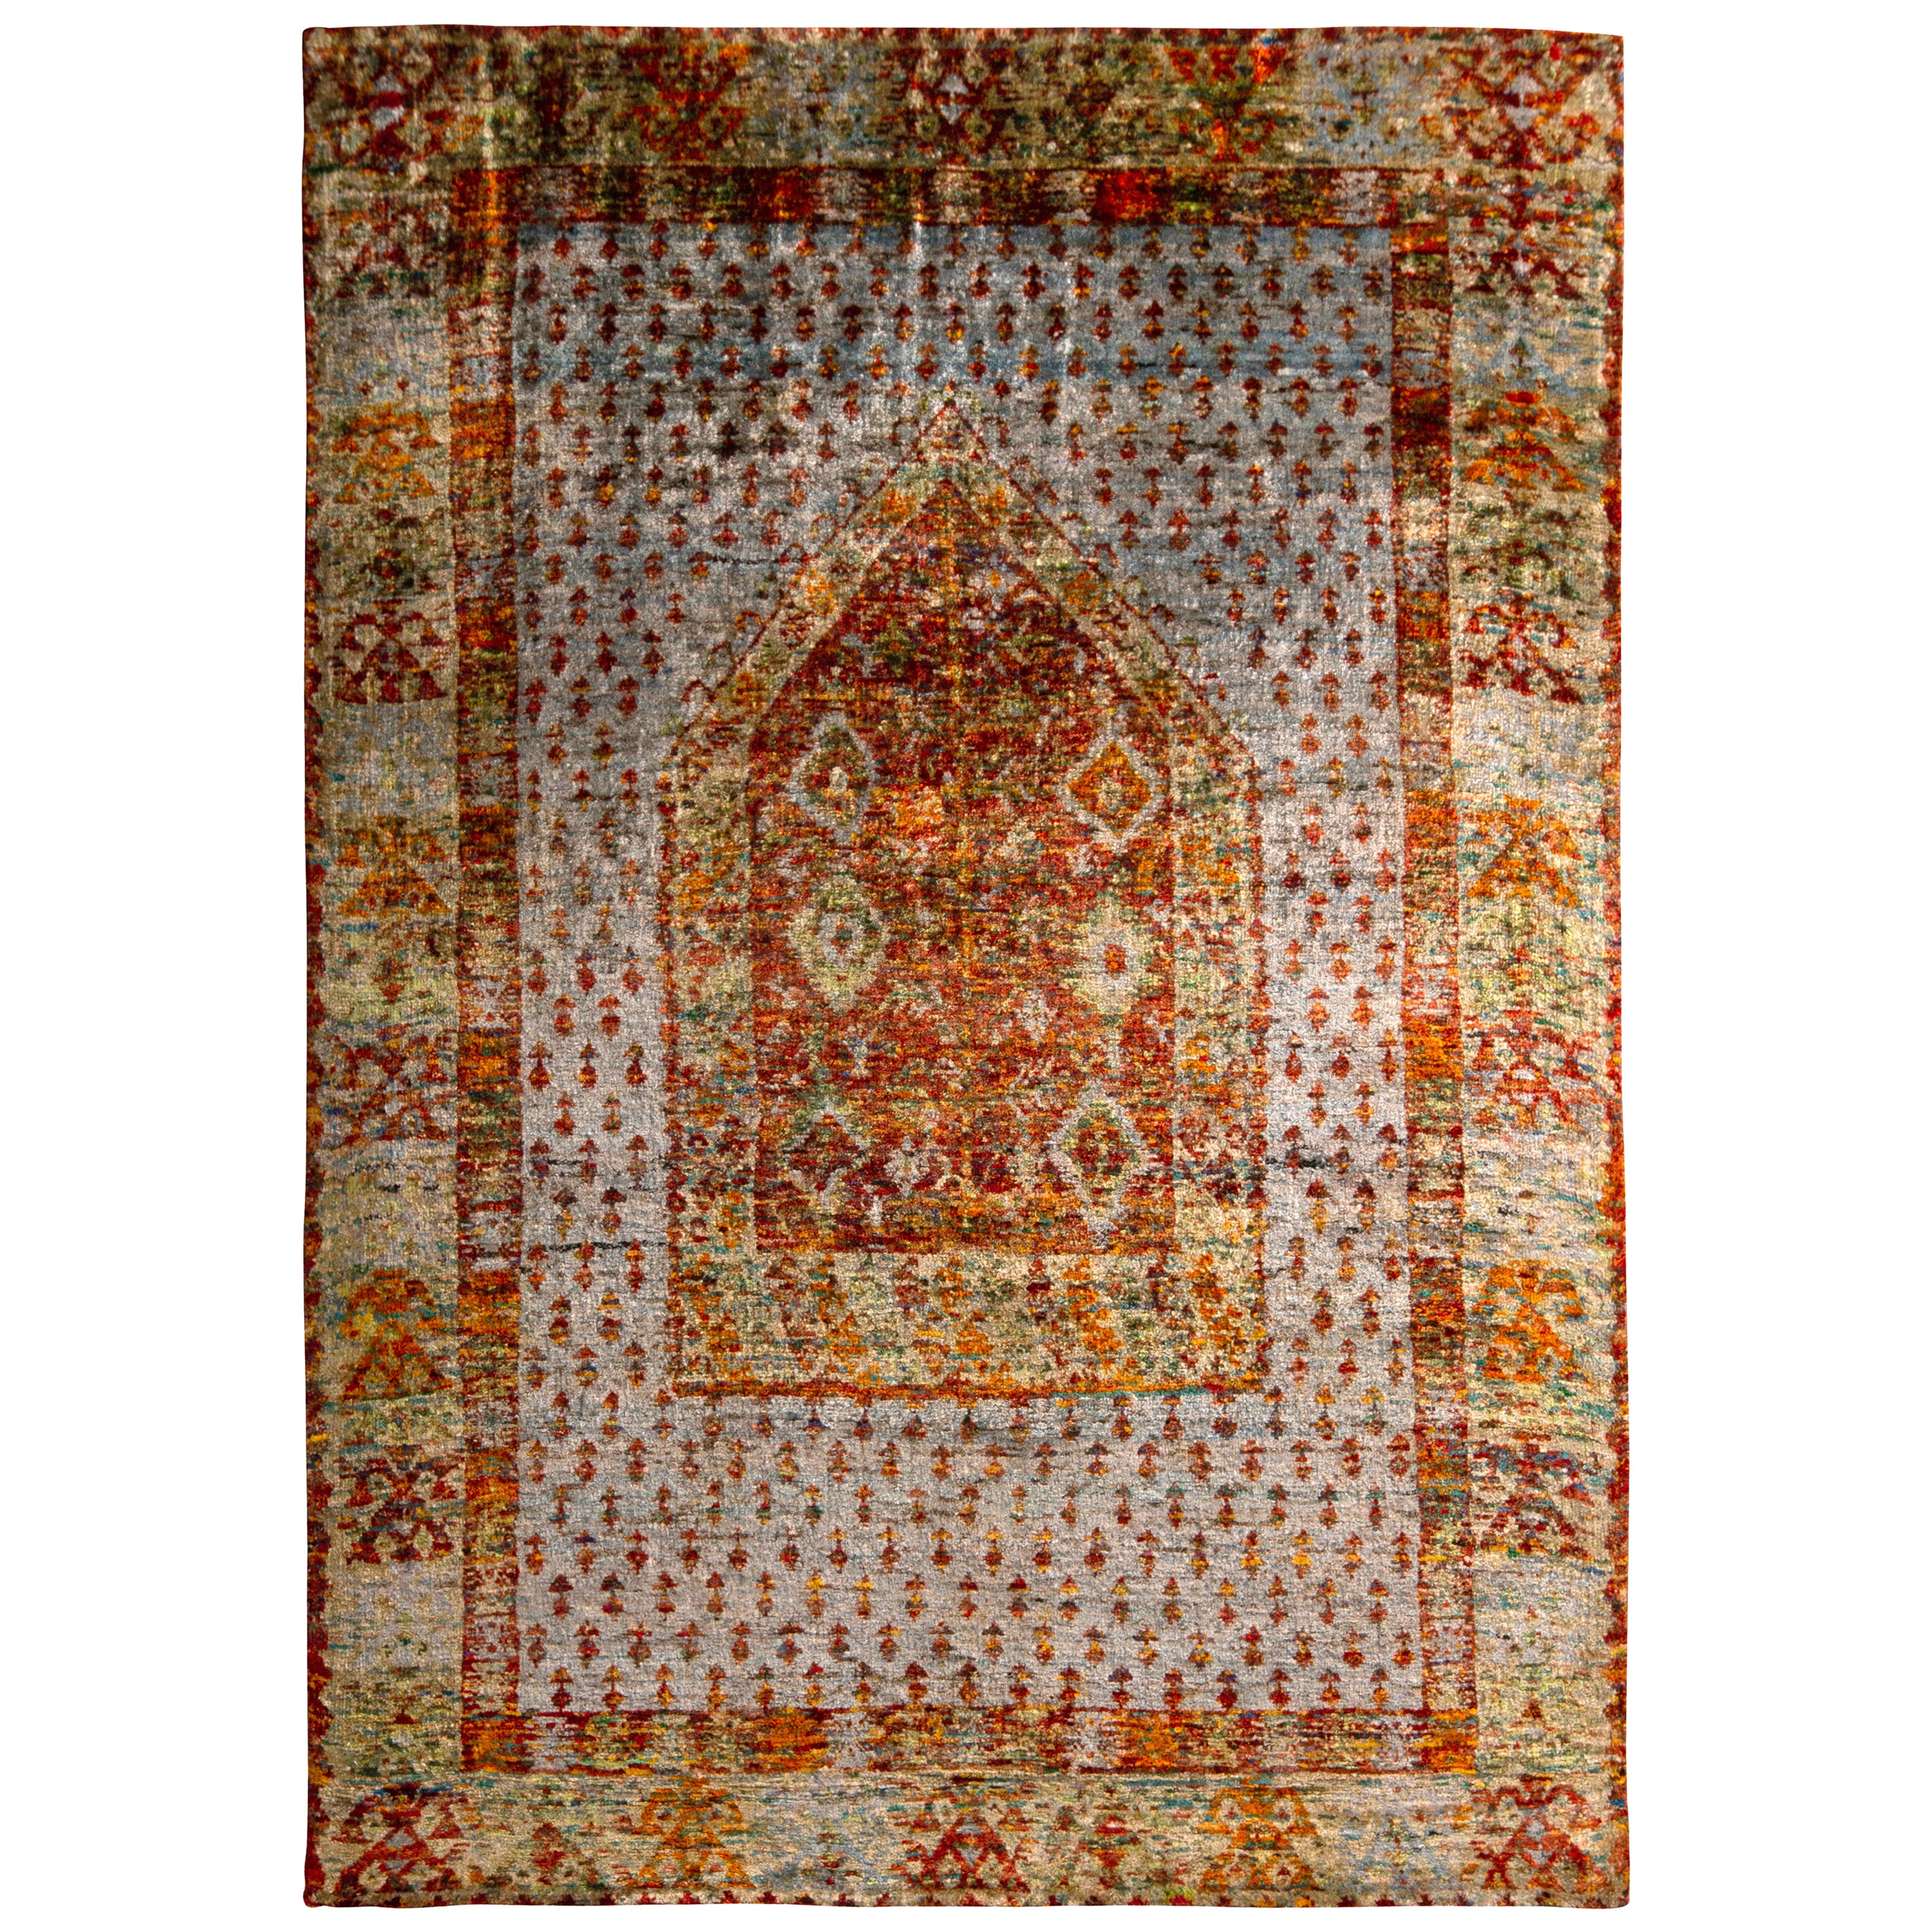 Anatolian Style Pure Silk Rug Red and Blue Geometric Pattern by Rug & Kilim